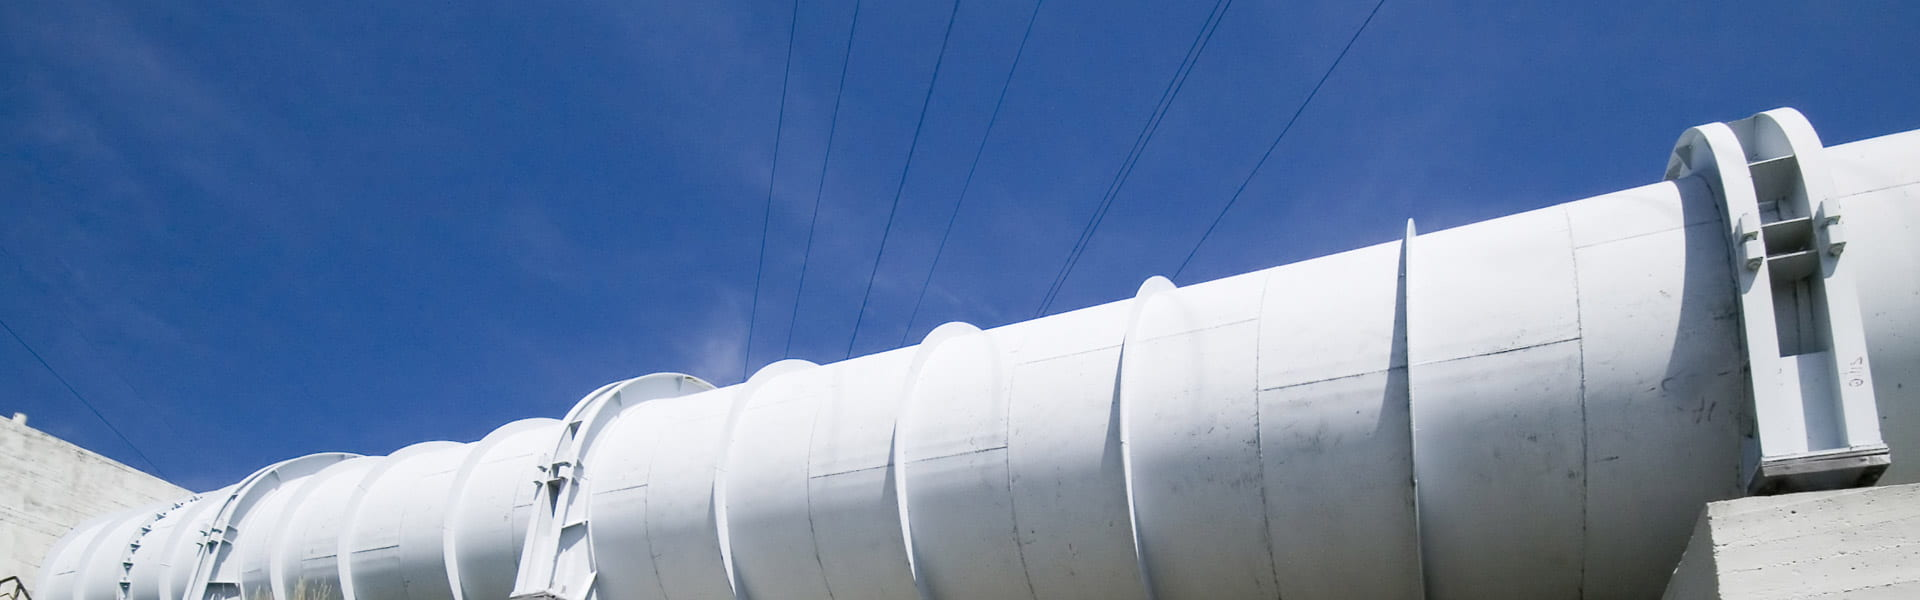 Energy and Infrastructure Coatings Sector – Pipeline